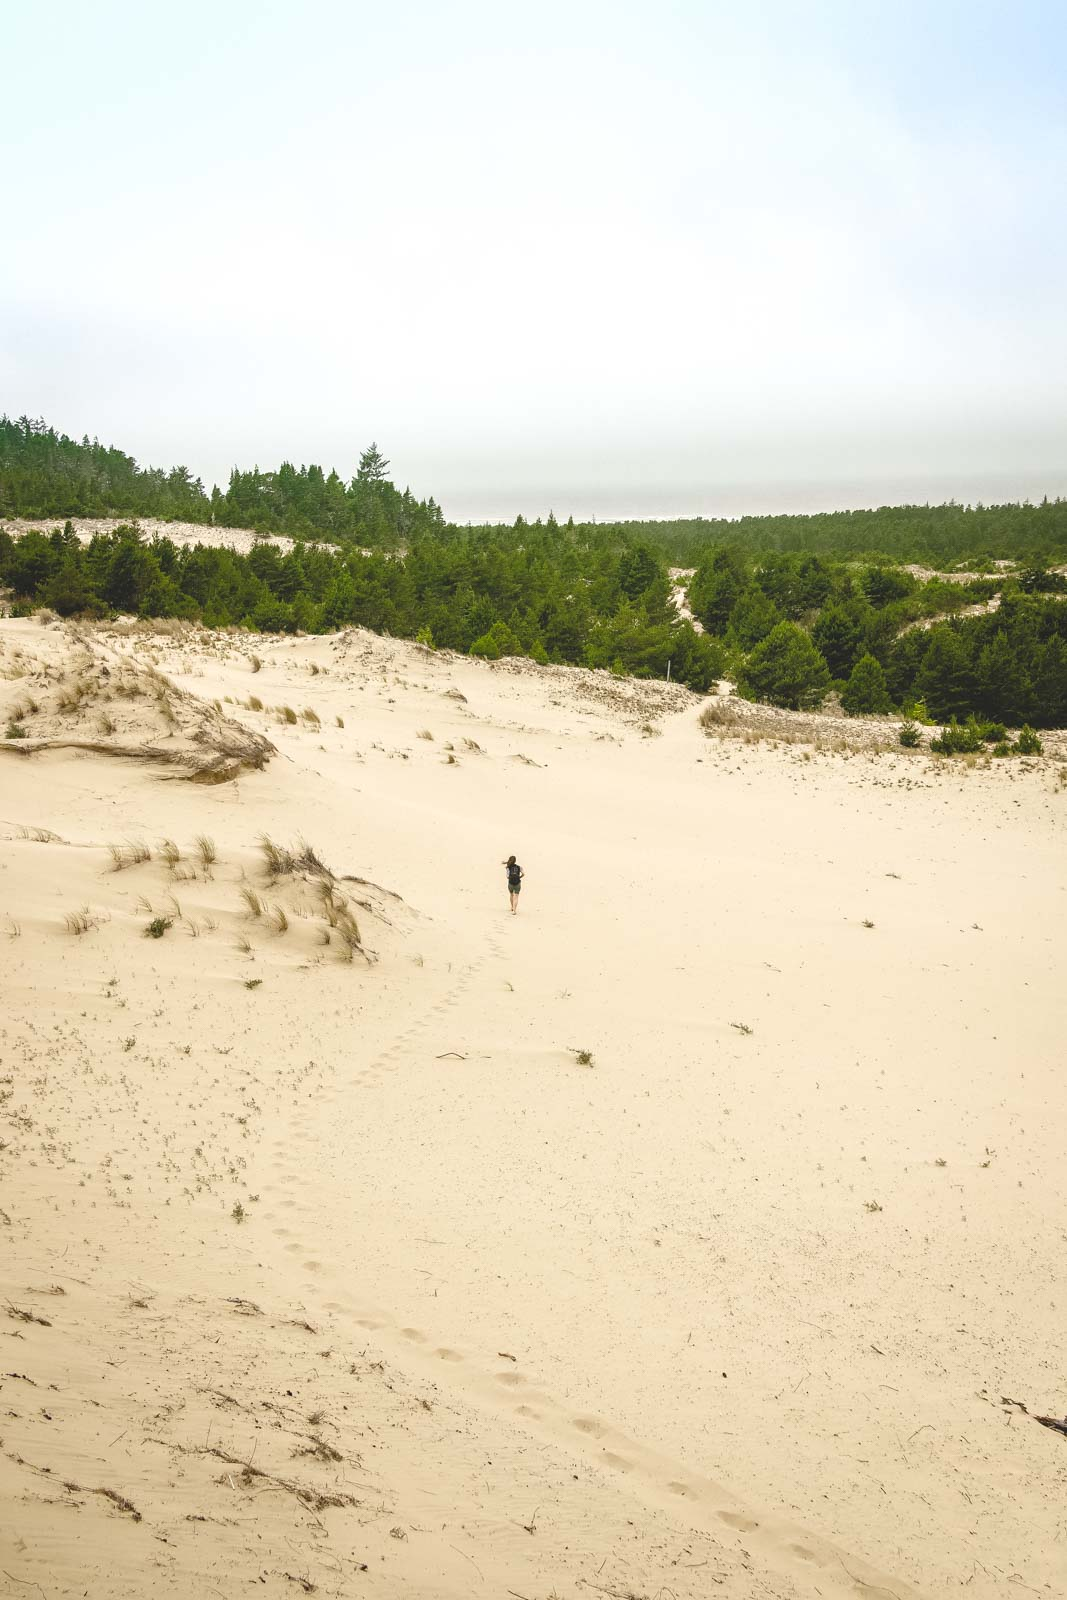 Tahkenitch Dunes Trail is one of many Oregon dunes that has pretty views.